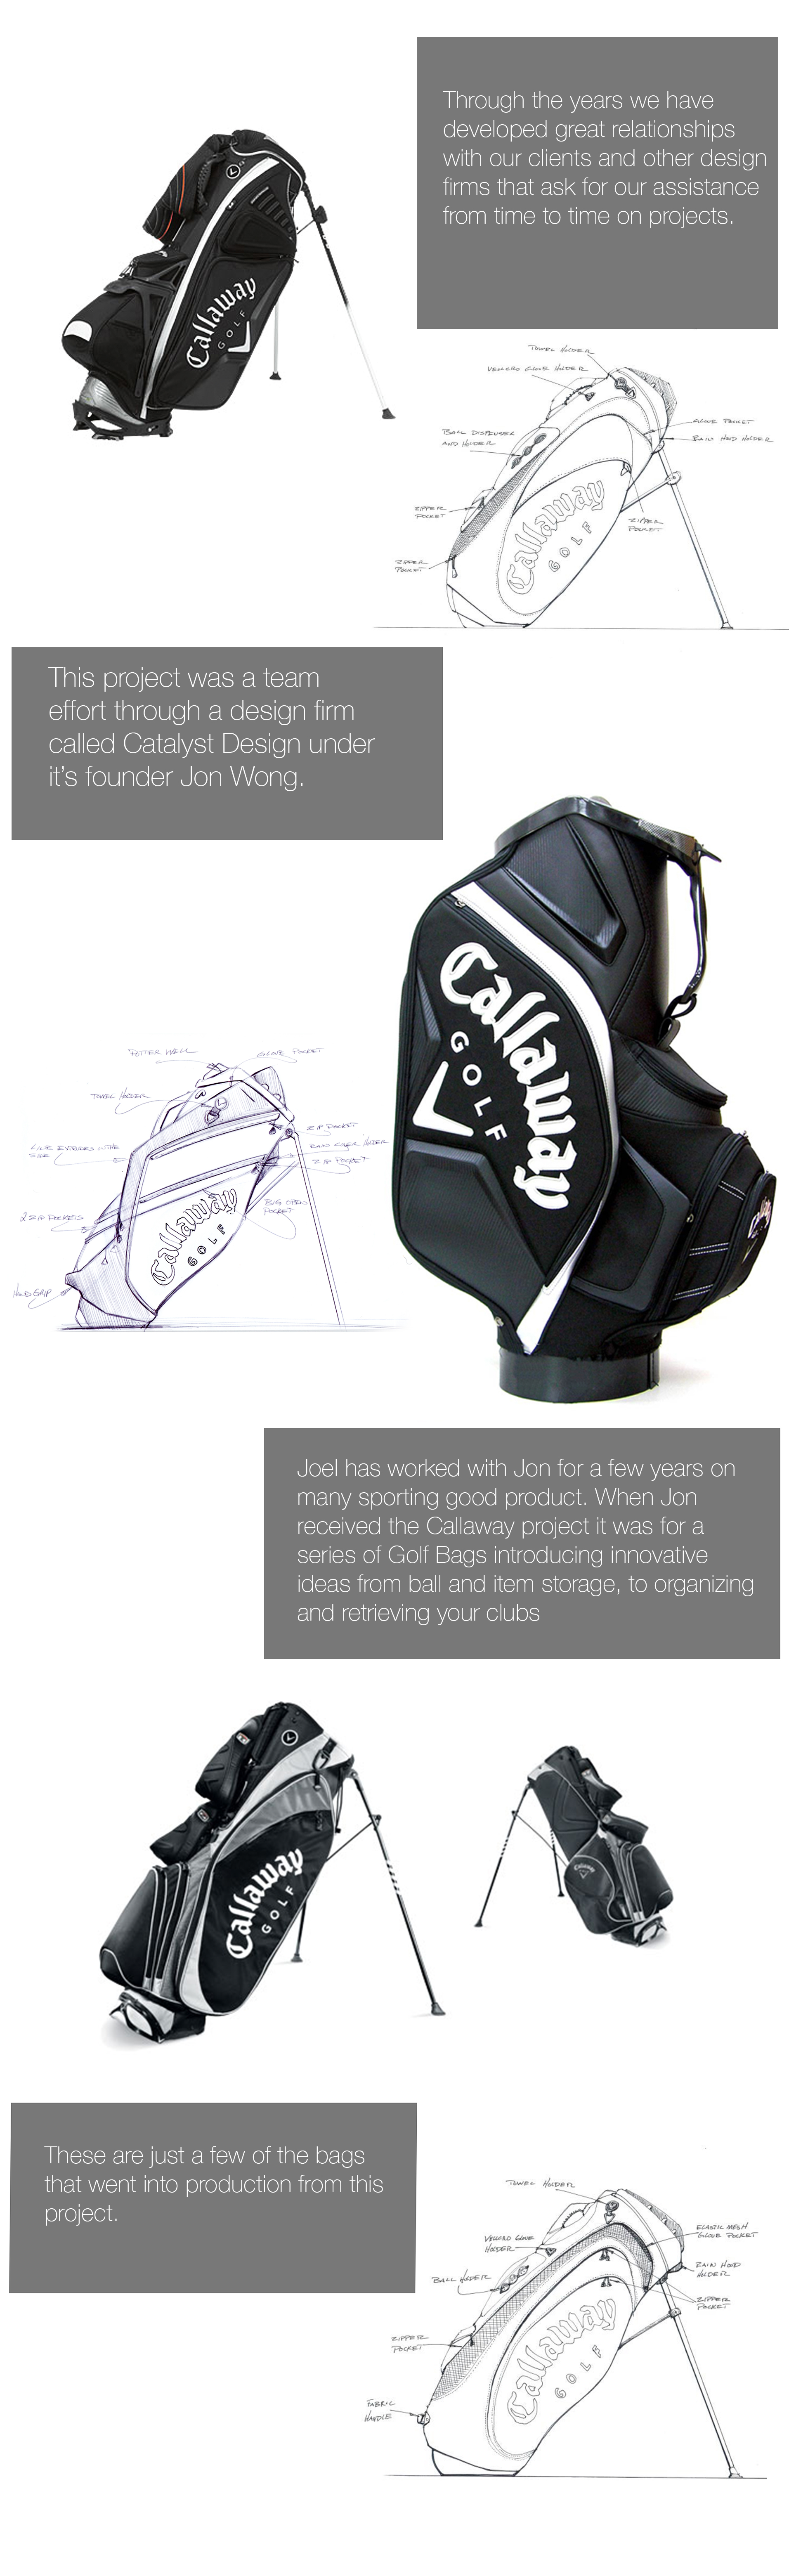 Project Callaway Images 2.jpg